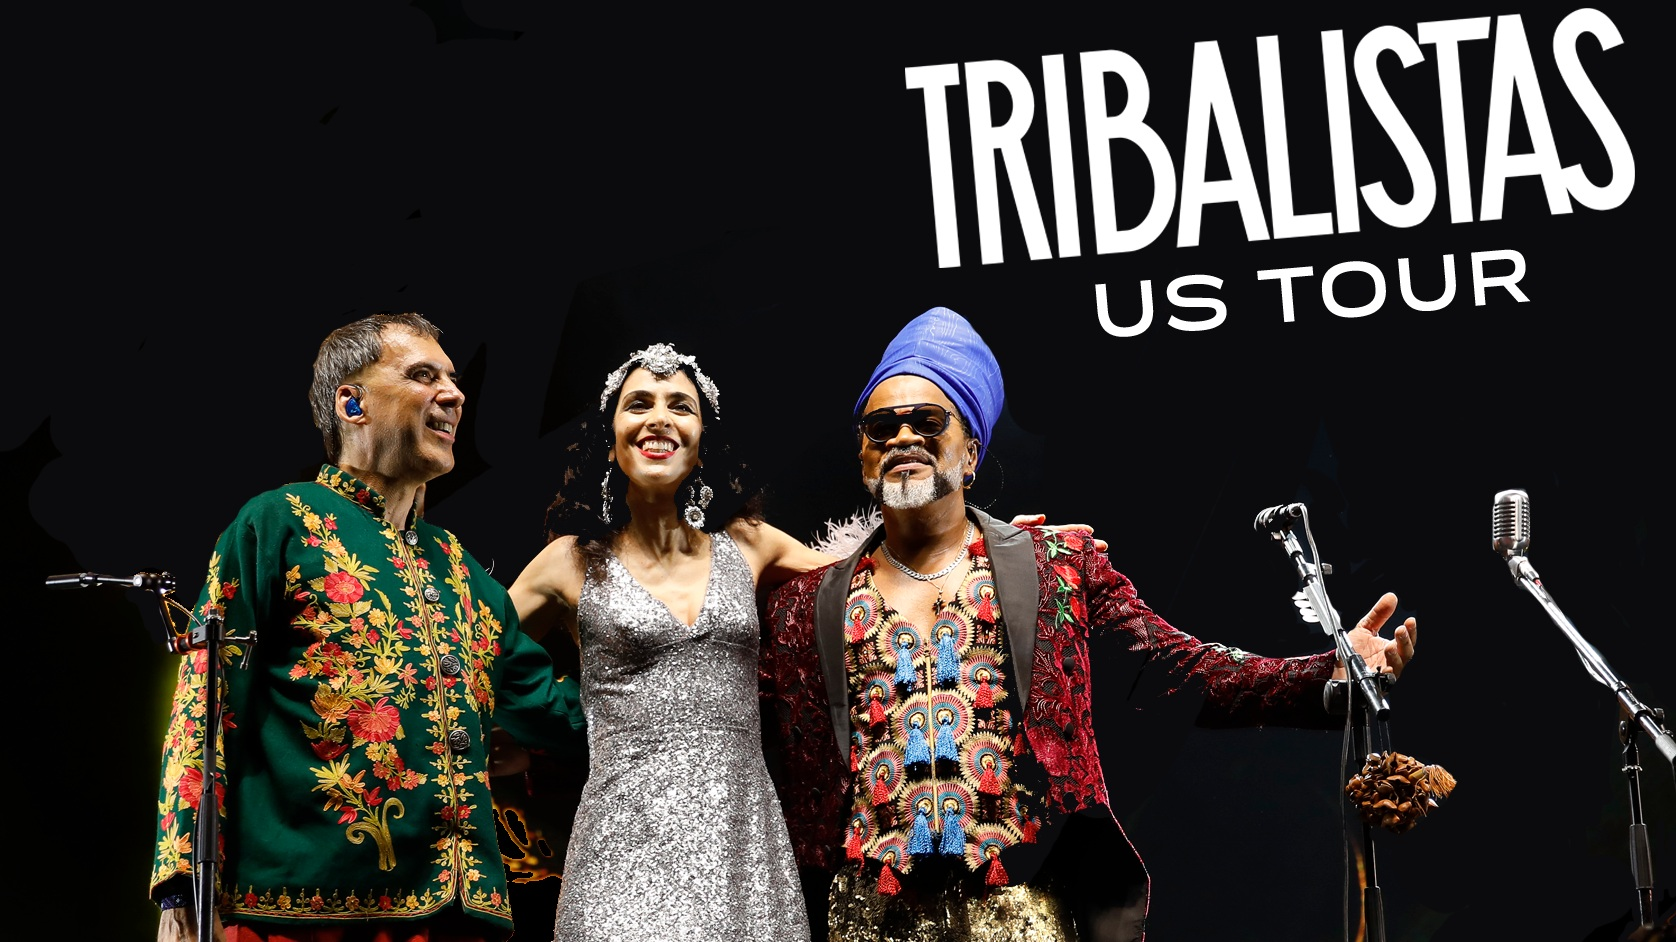 Brazilian supergroup Tribalistas with Arnaldo Antunes, Marisa Monte and Carlinhos Brown (2019)